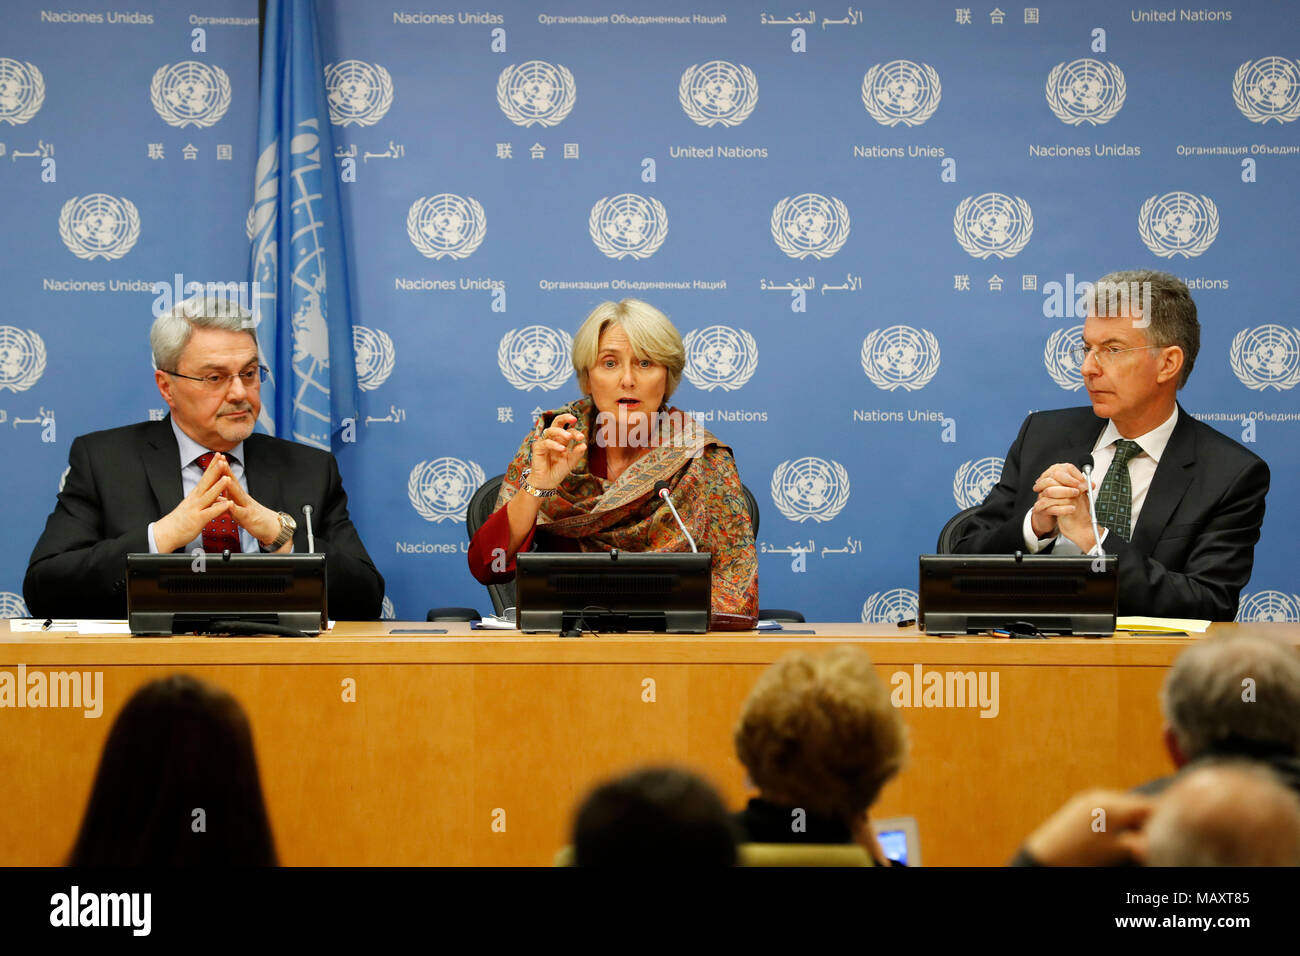 (180404) -- UNITED NATIONS, April 4, 2018 (Xinhua) -- Iraqi Permanent Representative to the United Nations Mohammed Hussein Bahr Aluloom (L, Rear), Director of the UN Mine Action Service (UNMAS) Agnes Marcaillou (C, Rear) and German Permanent Representative to the United Nations Christoph Heusgen (R, Rear), attend a press briefing on the occasion of the International Day for Mine Awareness and Assistance in Mine Action at the UN headquarters in New York, on April 4, 2018. UN Secretary-General Antonio Guterres on Wednesday called for action on landmines and asked governments to provide politica - Stock Image